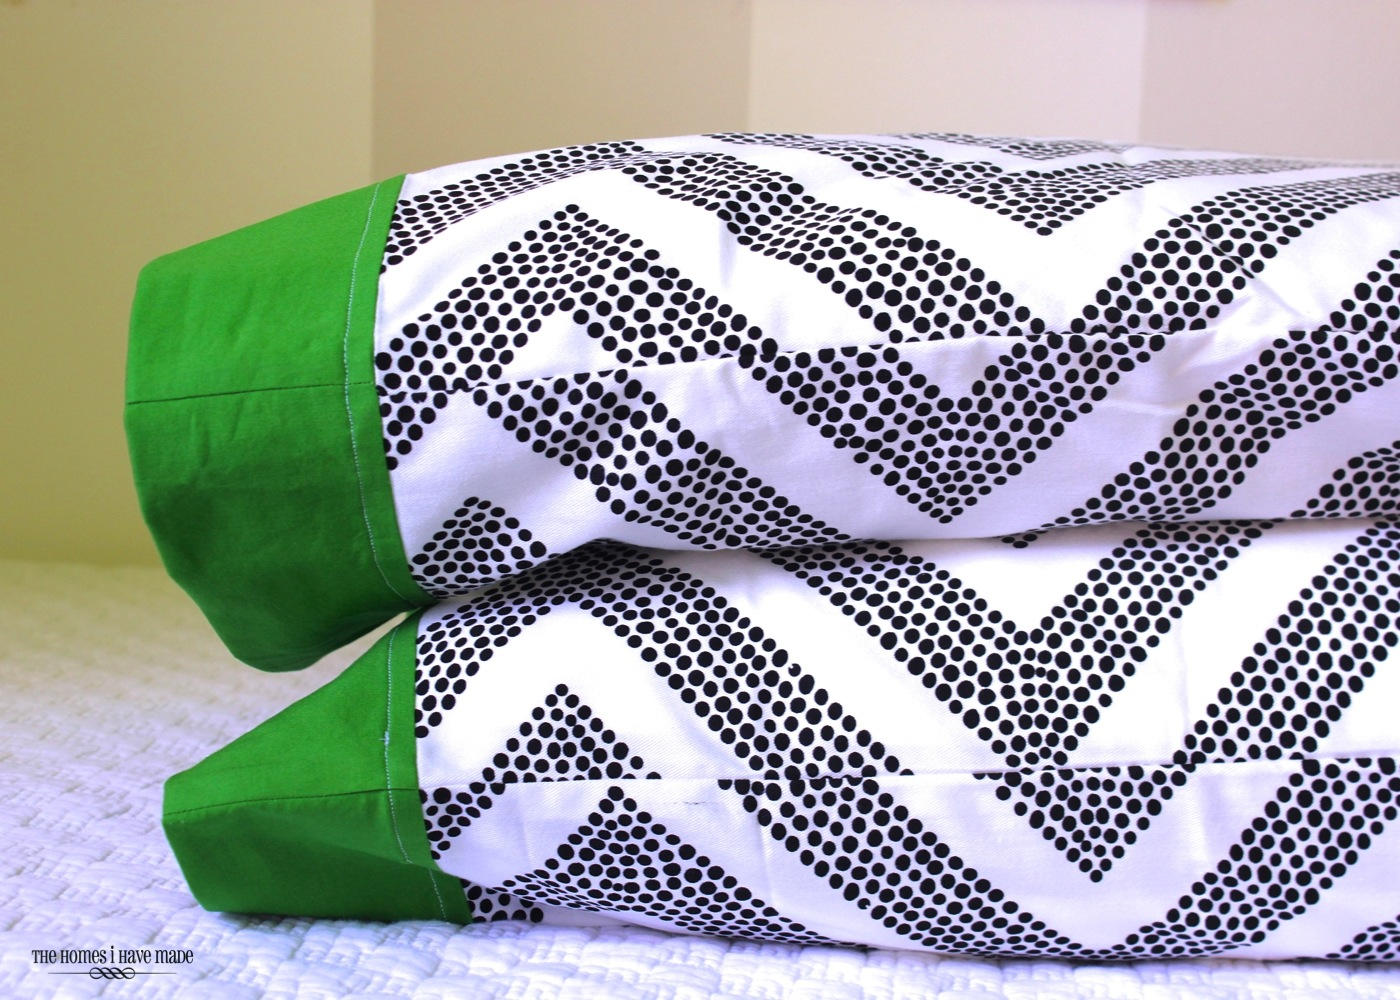 How To Make A Pillowcase From A Body Pillow The Homes I Have Made